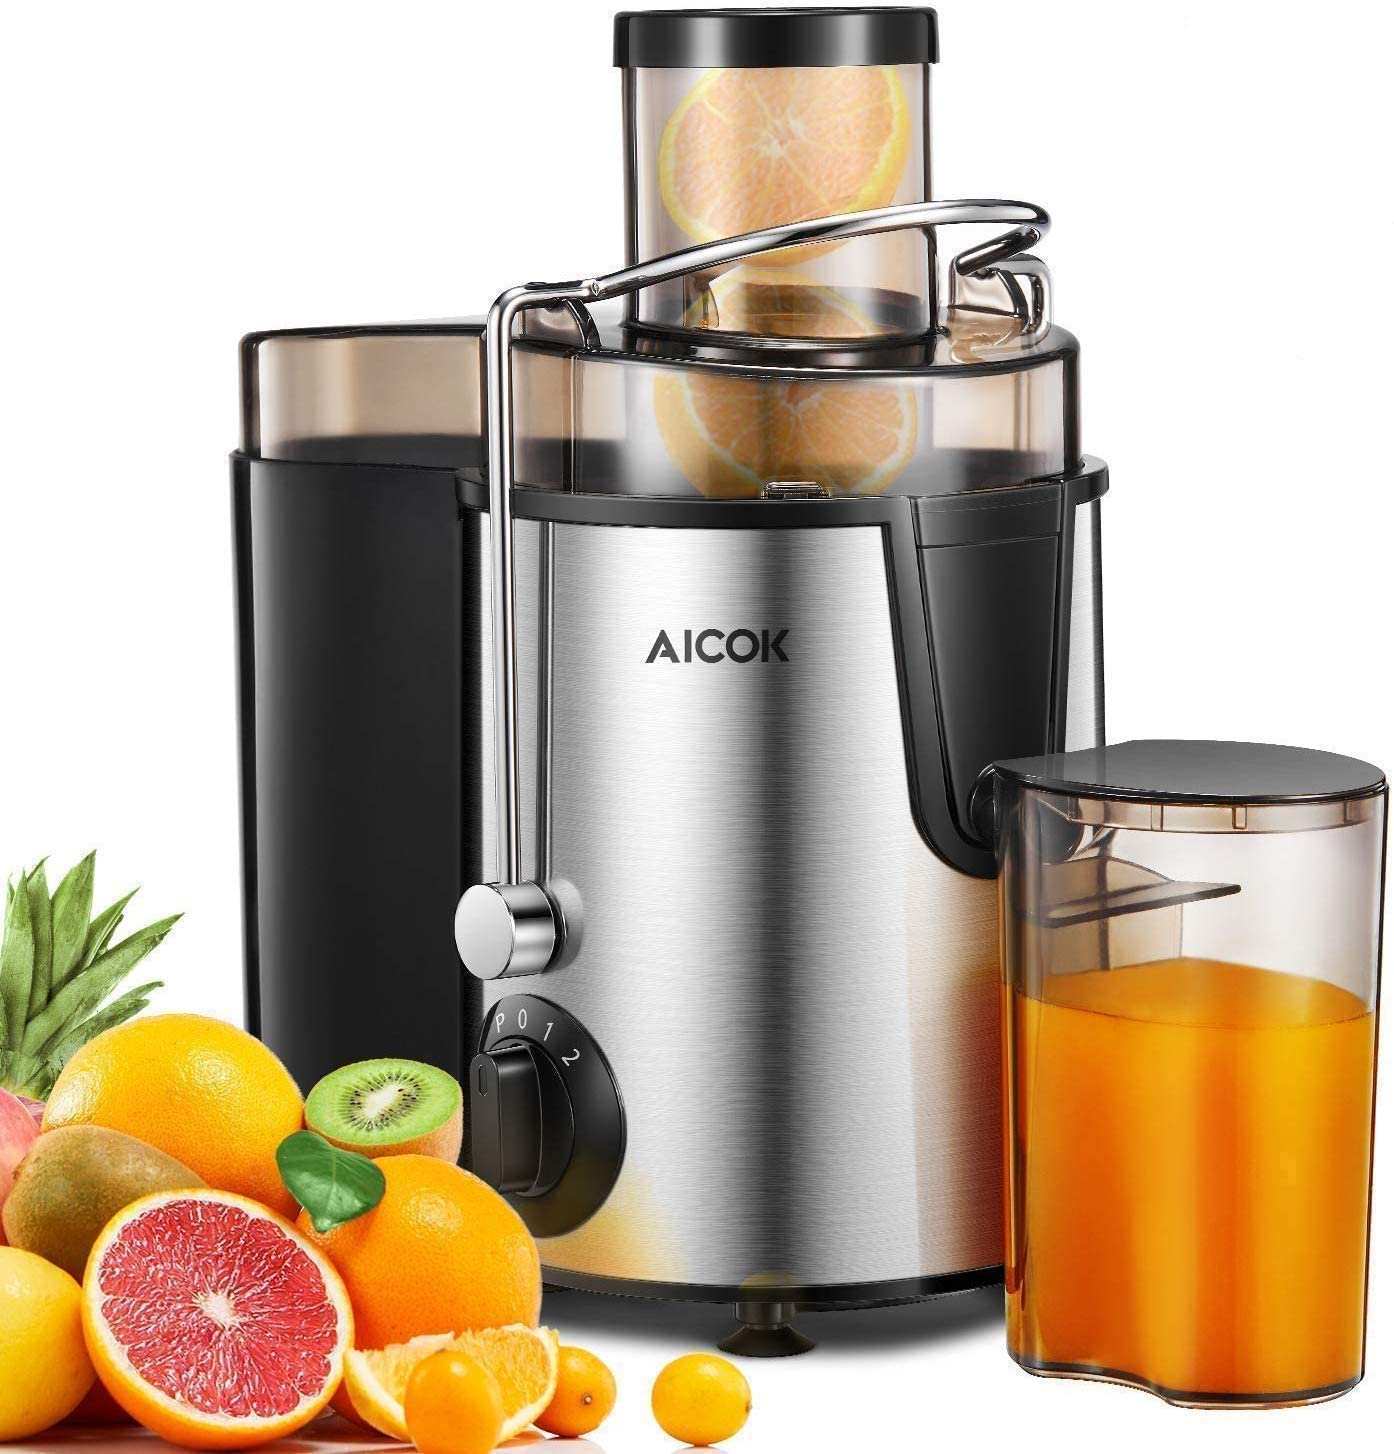 Juicer Aicok Juicers Whole Fruit and